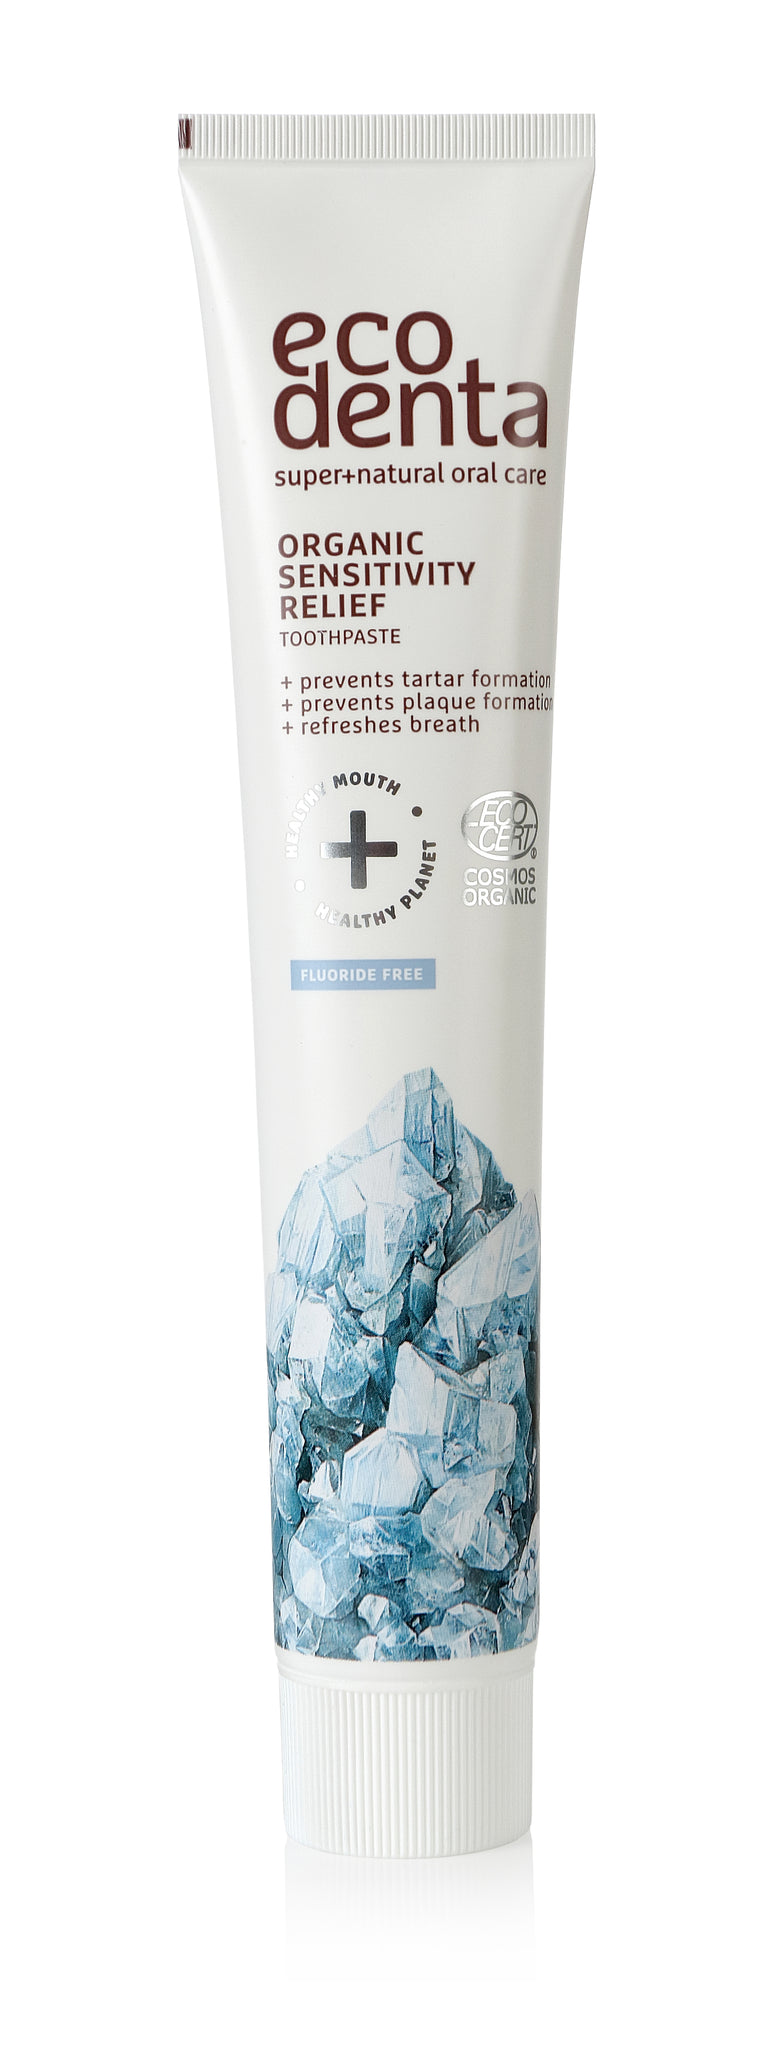 ecodenta Certified Organic Sensitivity relief toothpaste with salt - 8 x 75 ml